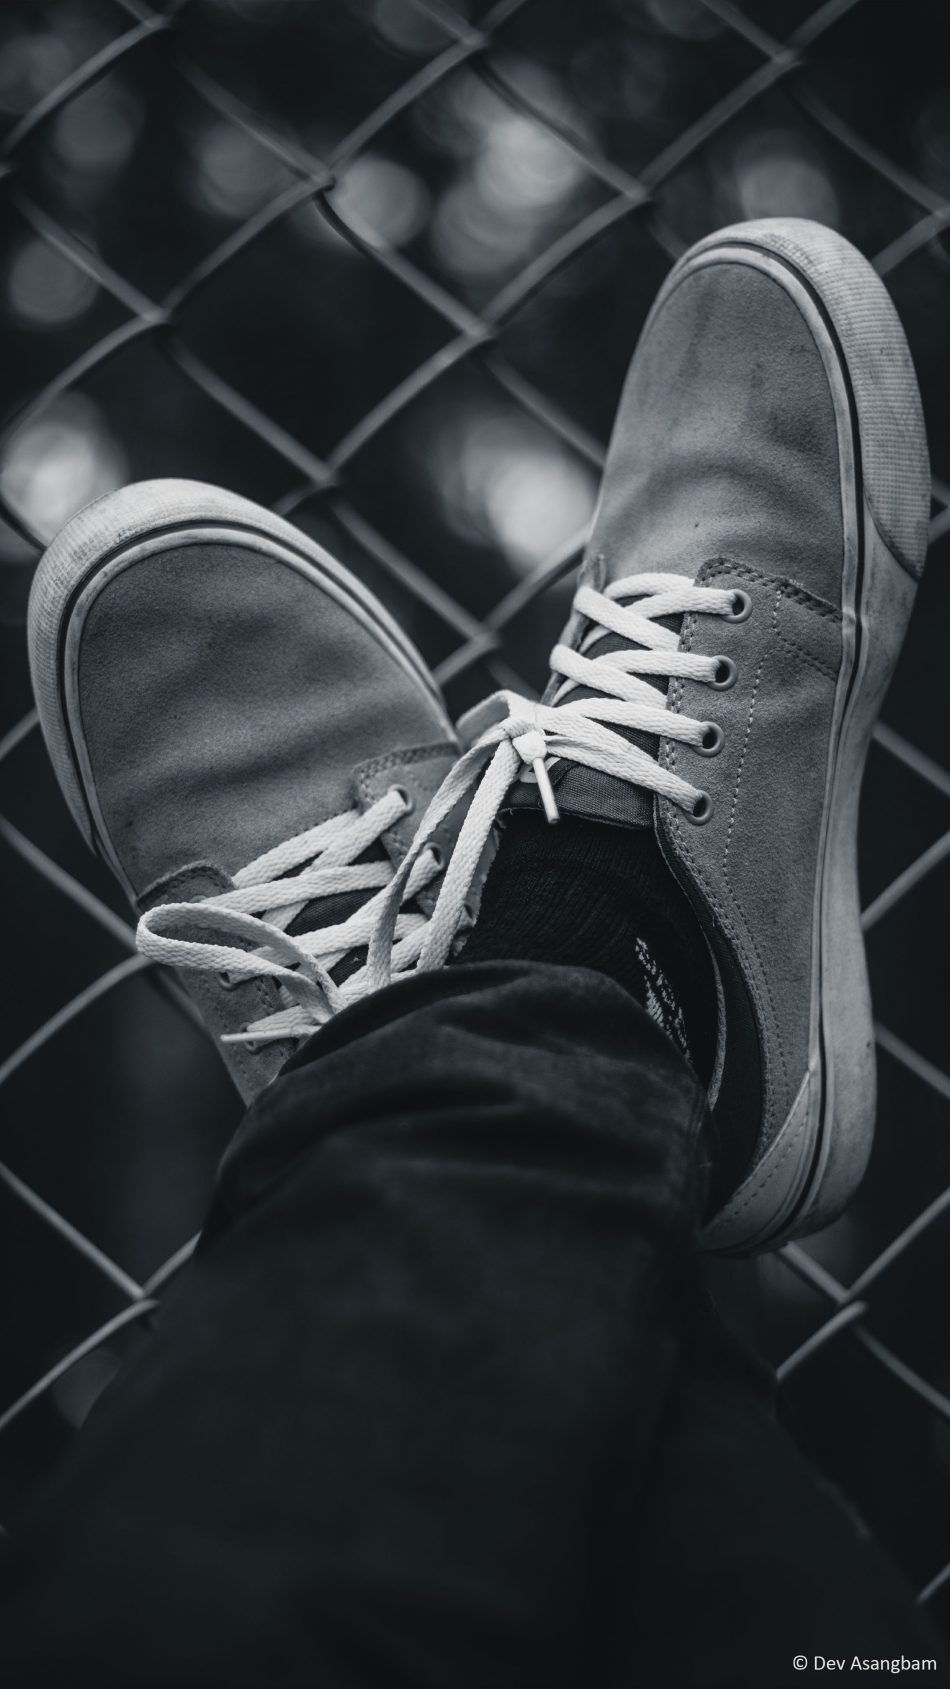 Sneakers Black & White Photography 4K Ultra HD Mobile Wallpaper